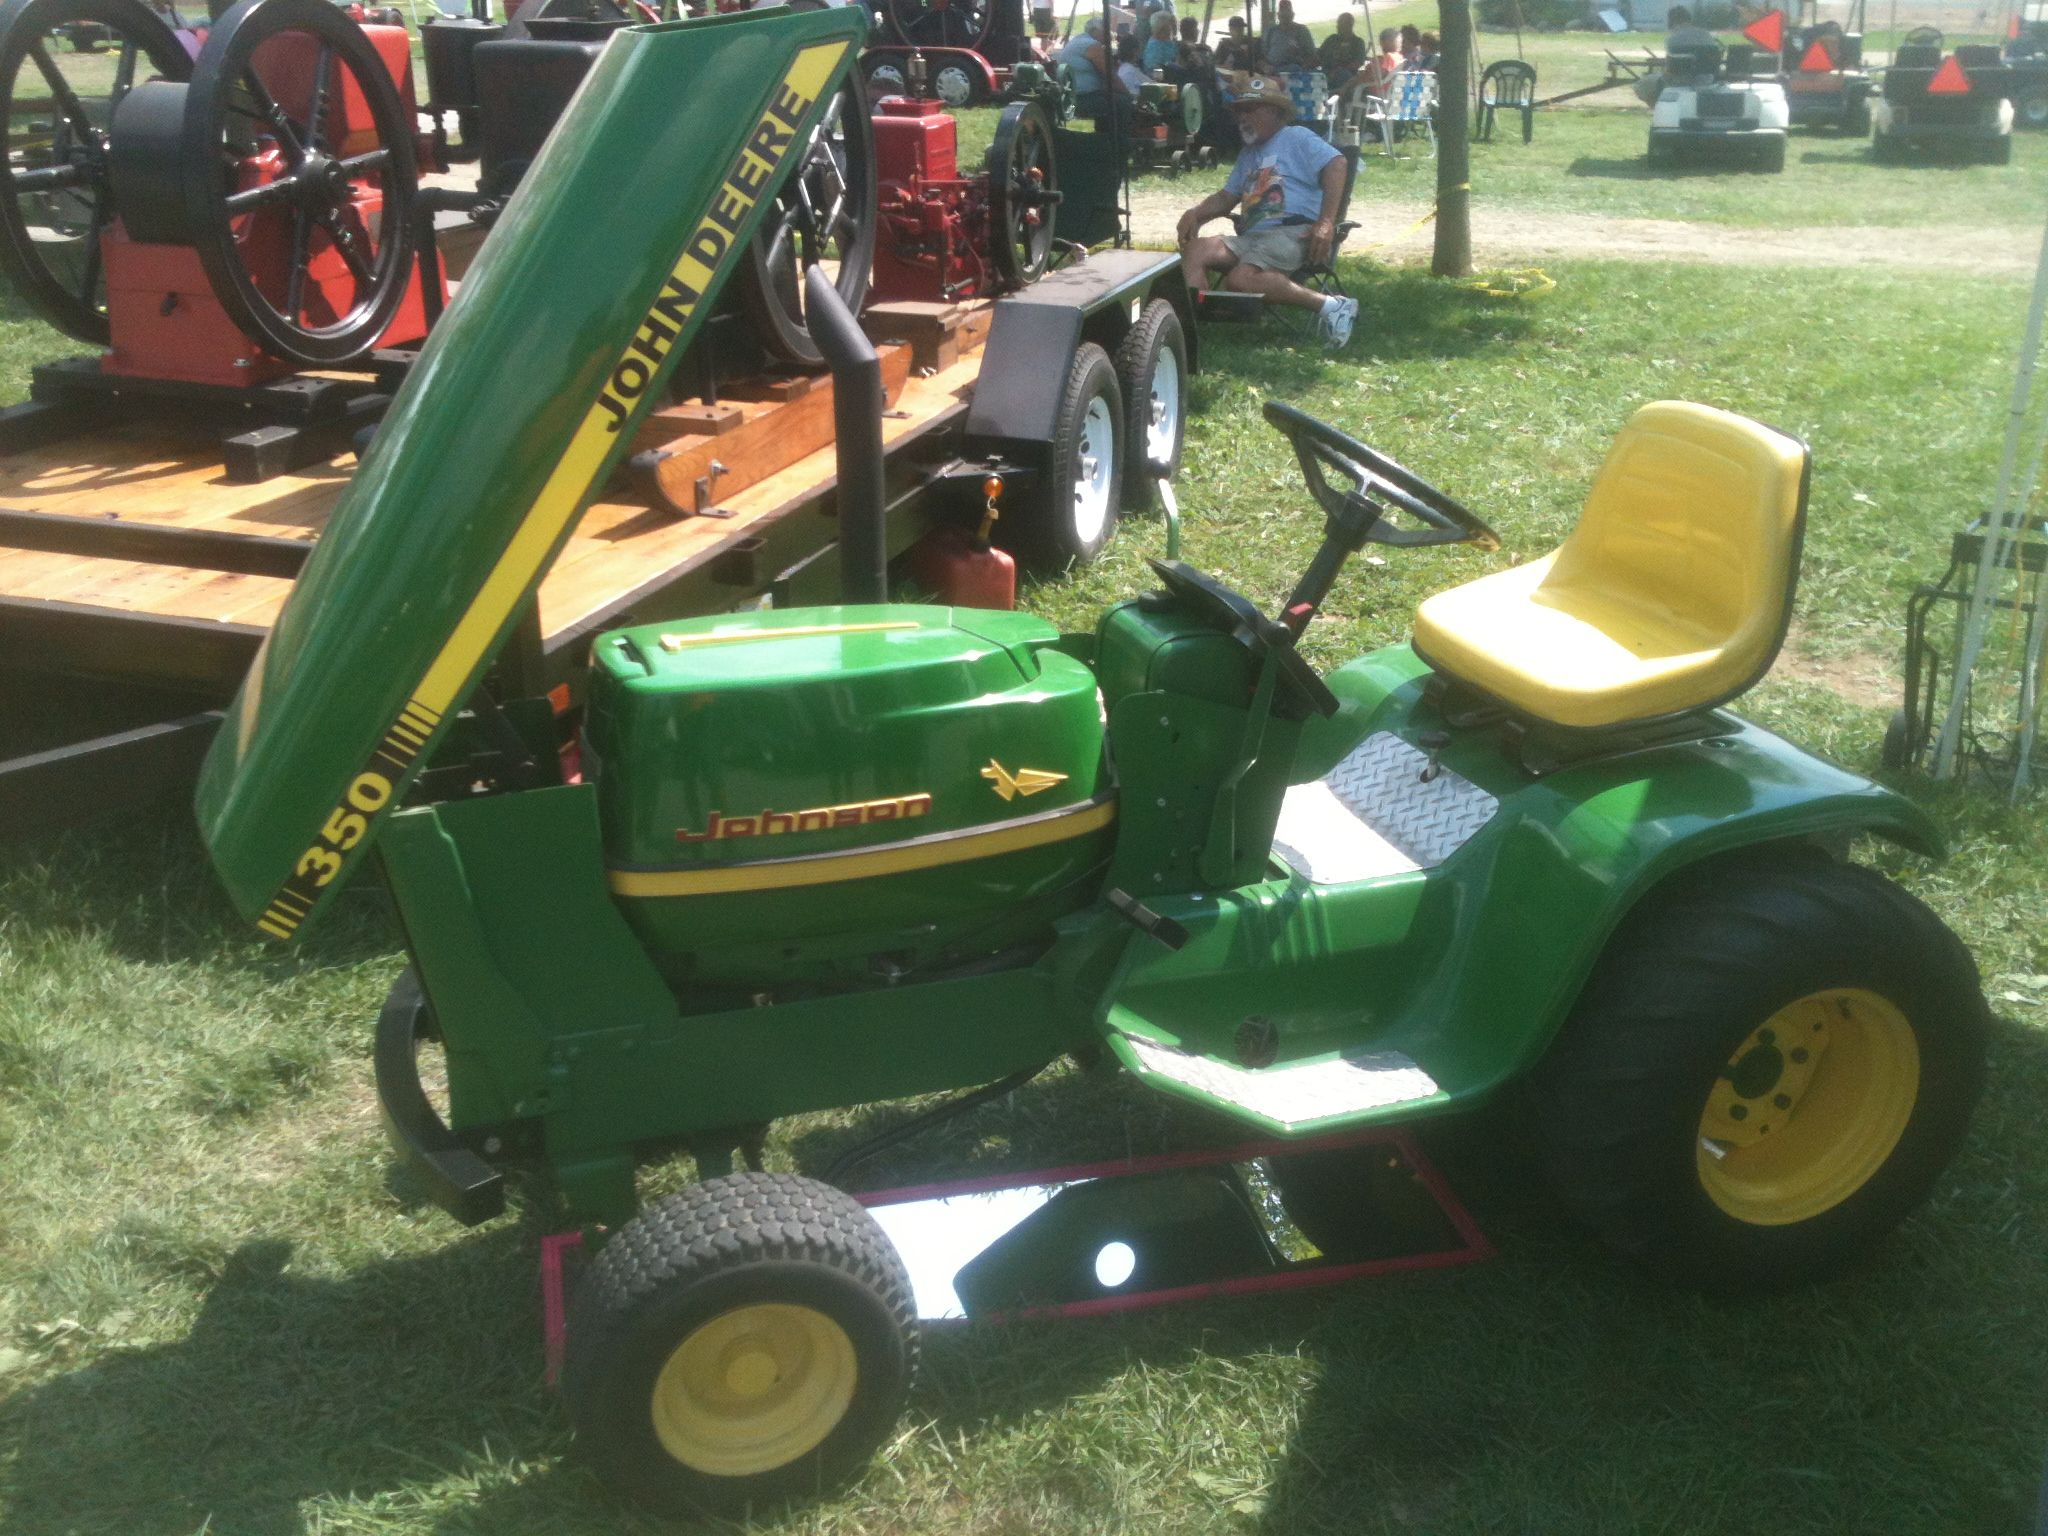 hight resolution of john deere garden tractor with a johnson outboard boat motor 72 jd 110 wiring problems john deere tractor forum gttalk